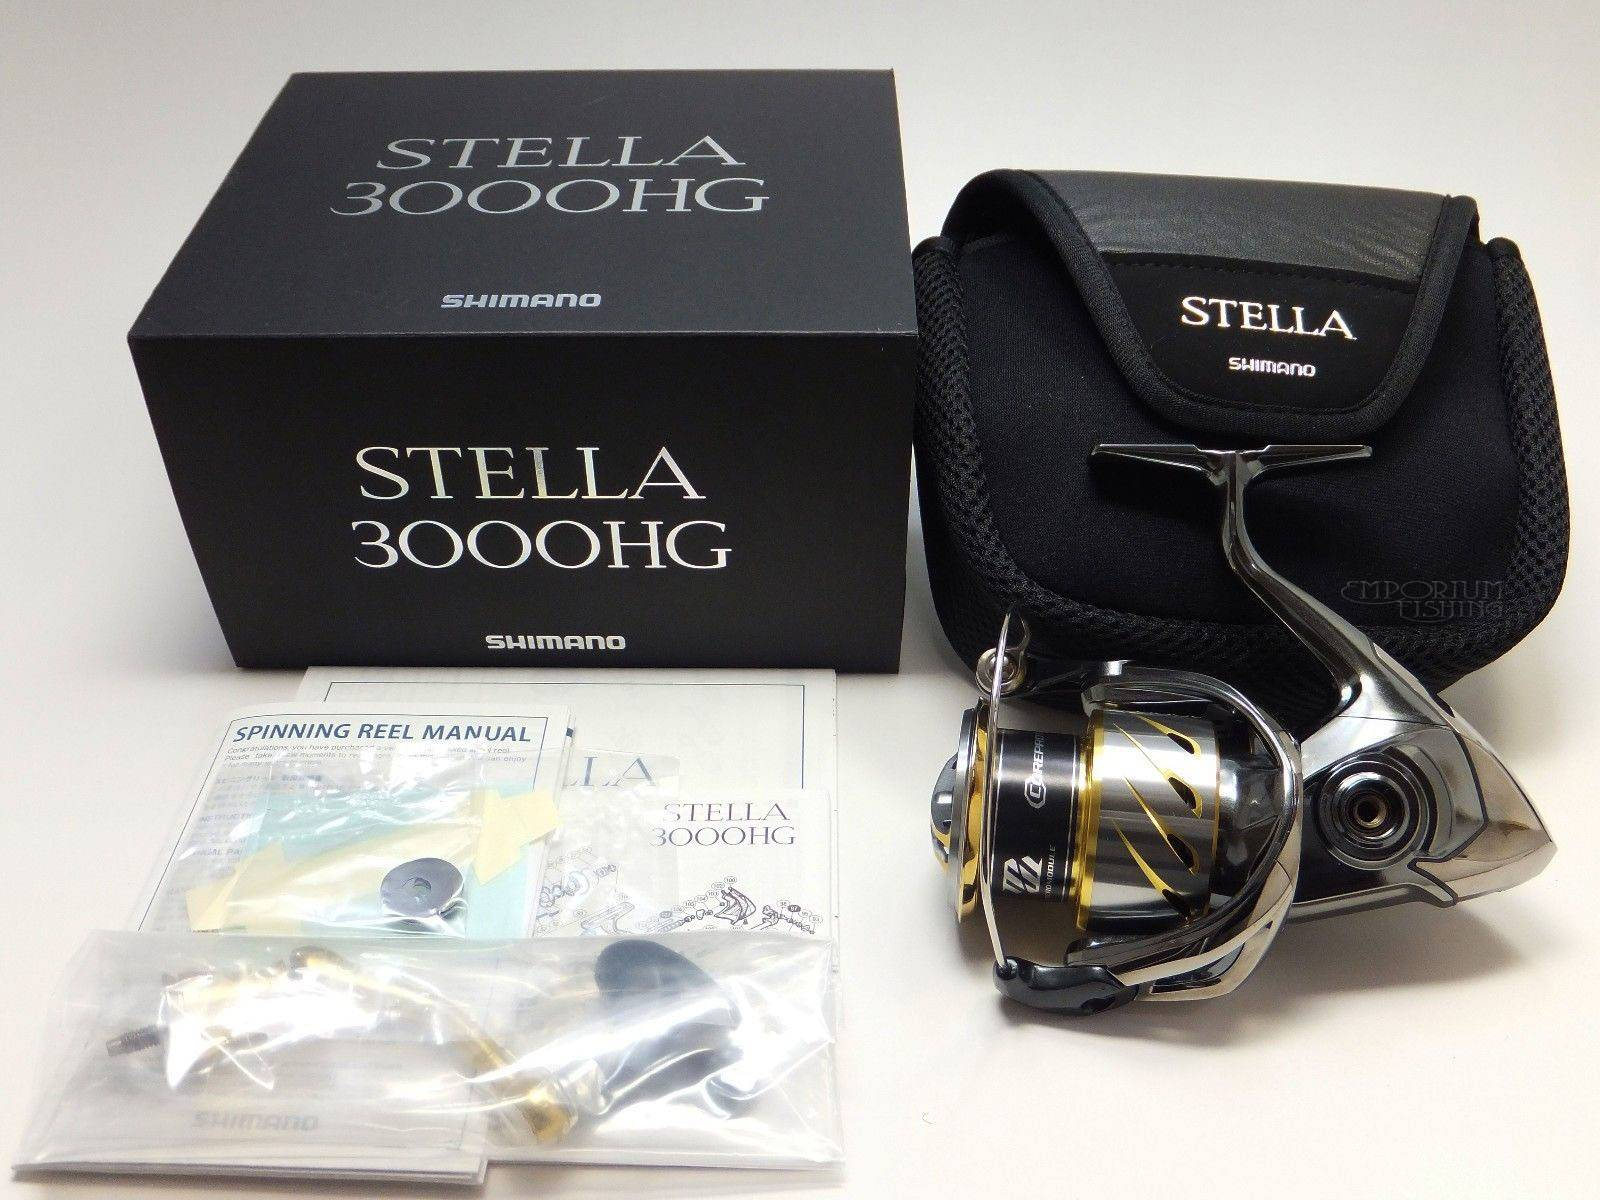 New Shimano STELLA 3000HG Spinning Reel 2014